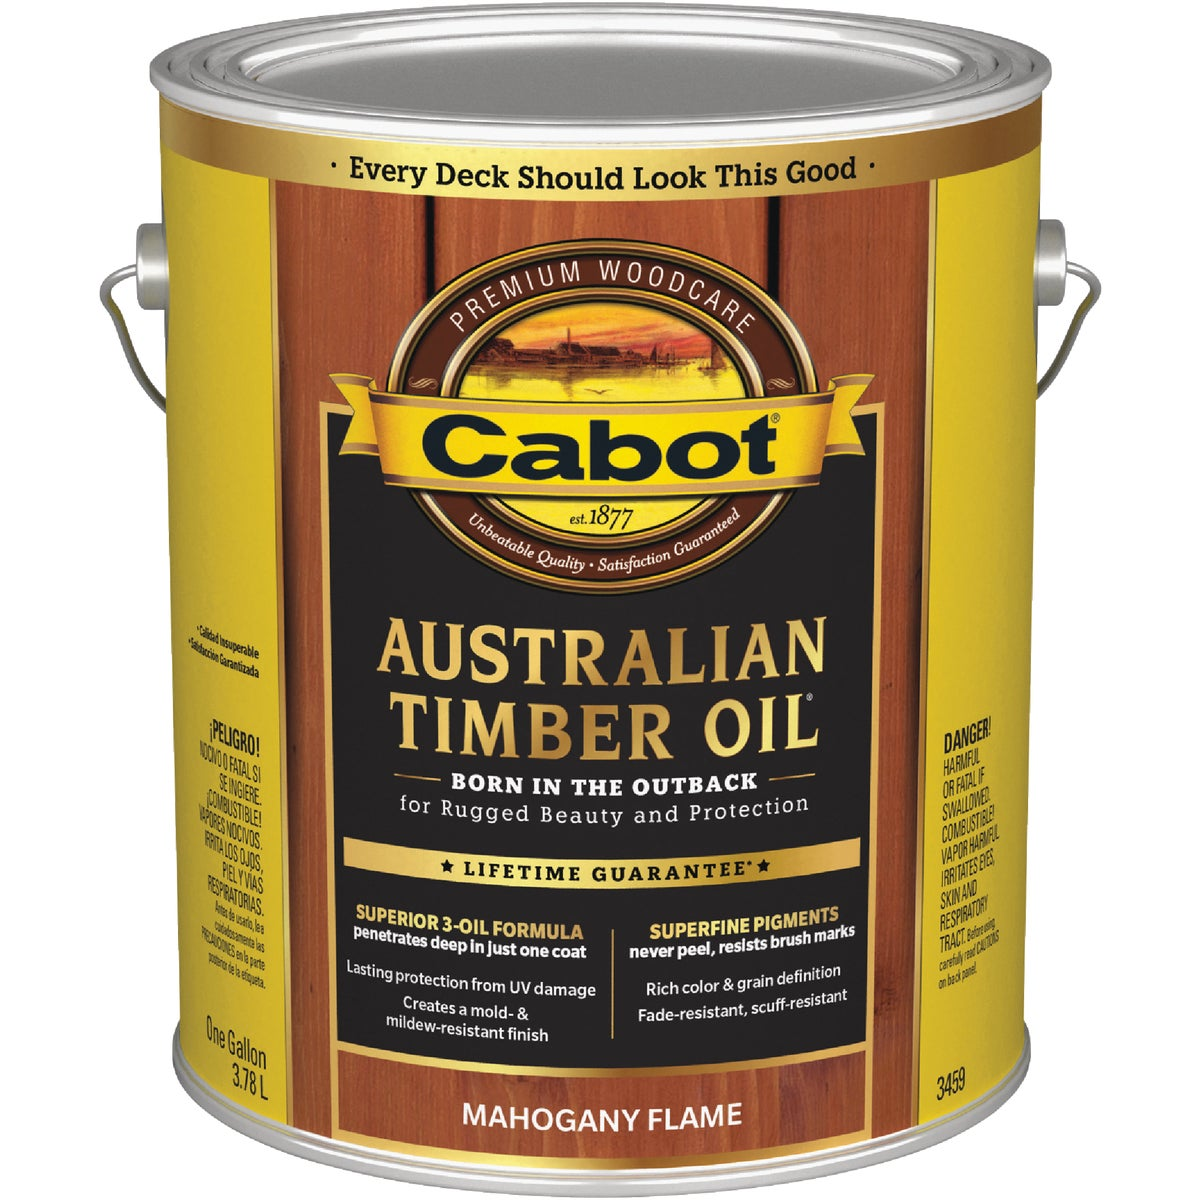 MAHGNY TIMBER OIL FINISH - 140.0003459.007 by Valspar Corp